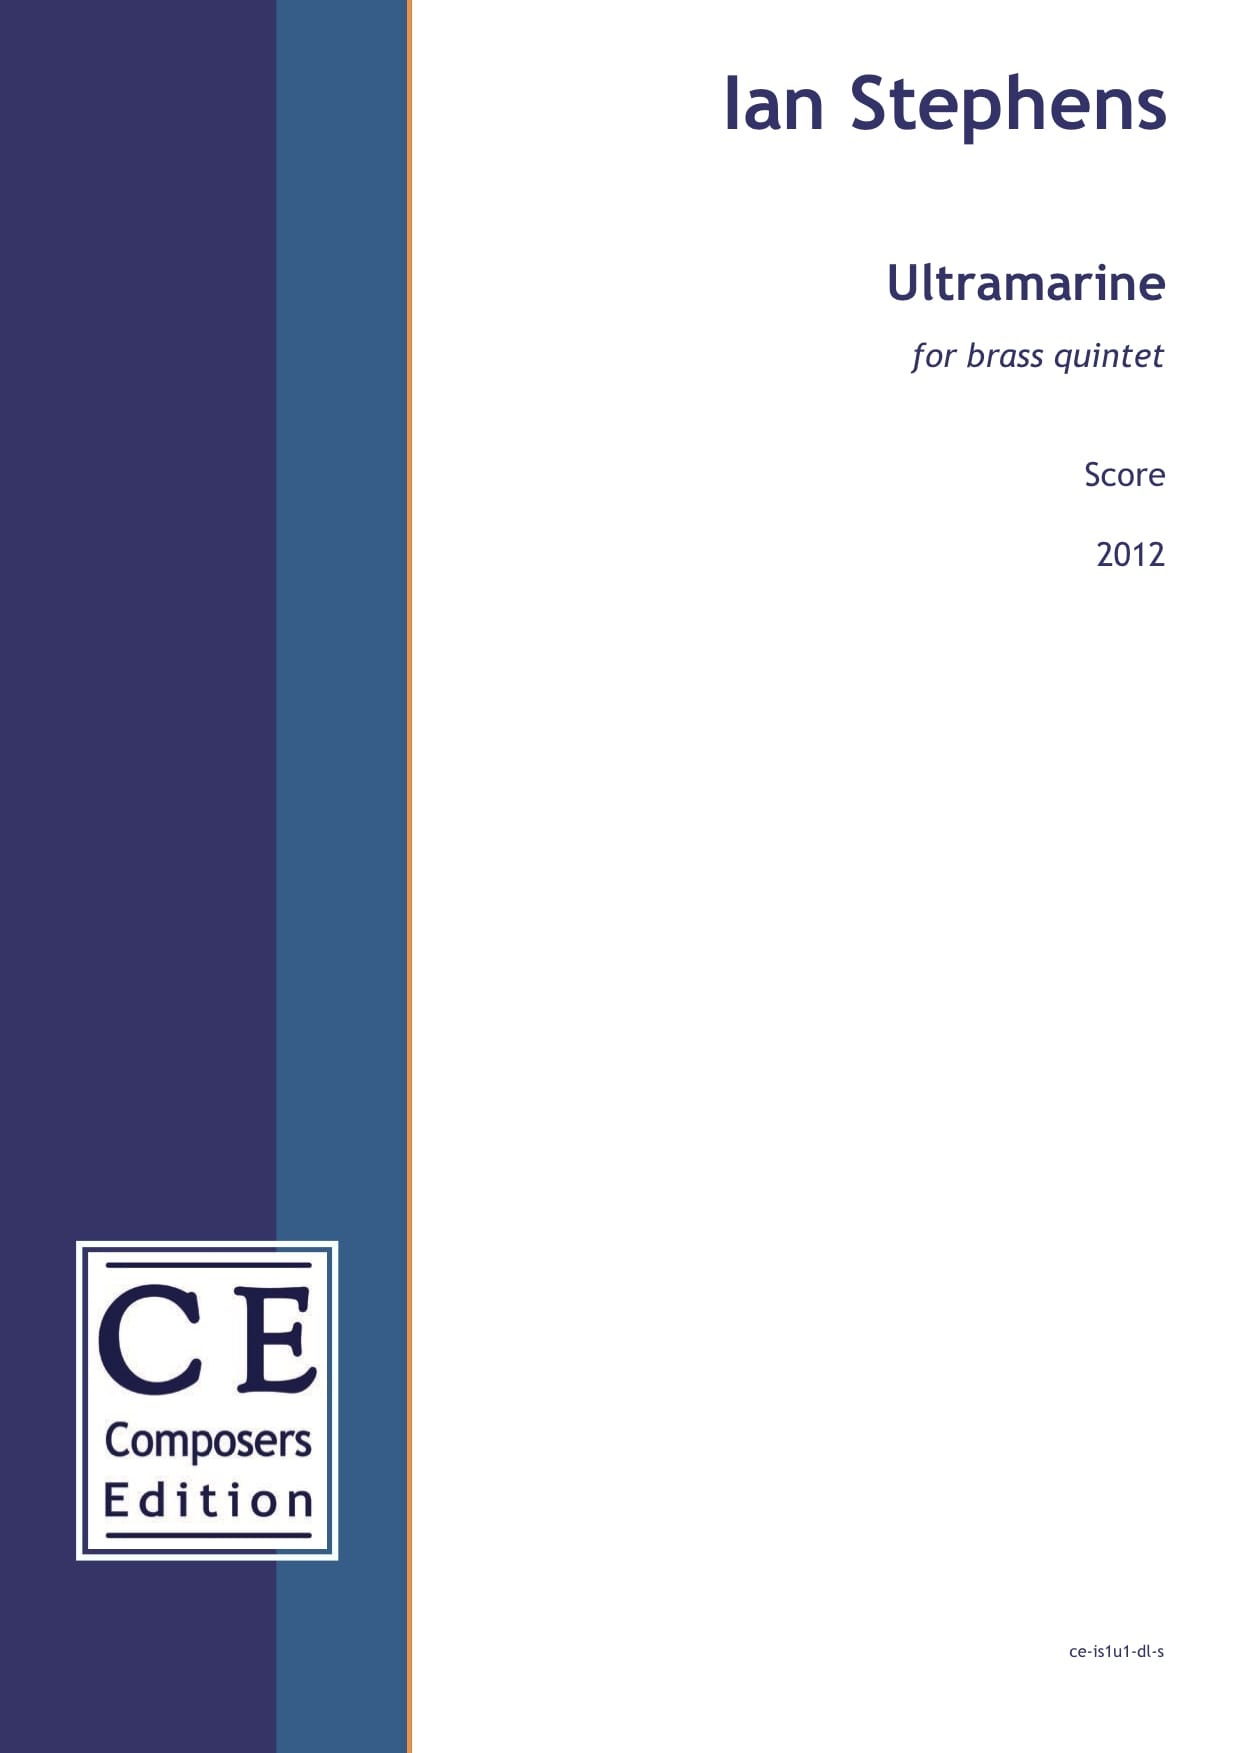 Ian Stephens: Ultramarine for brass quintet